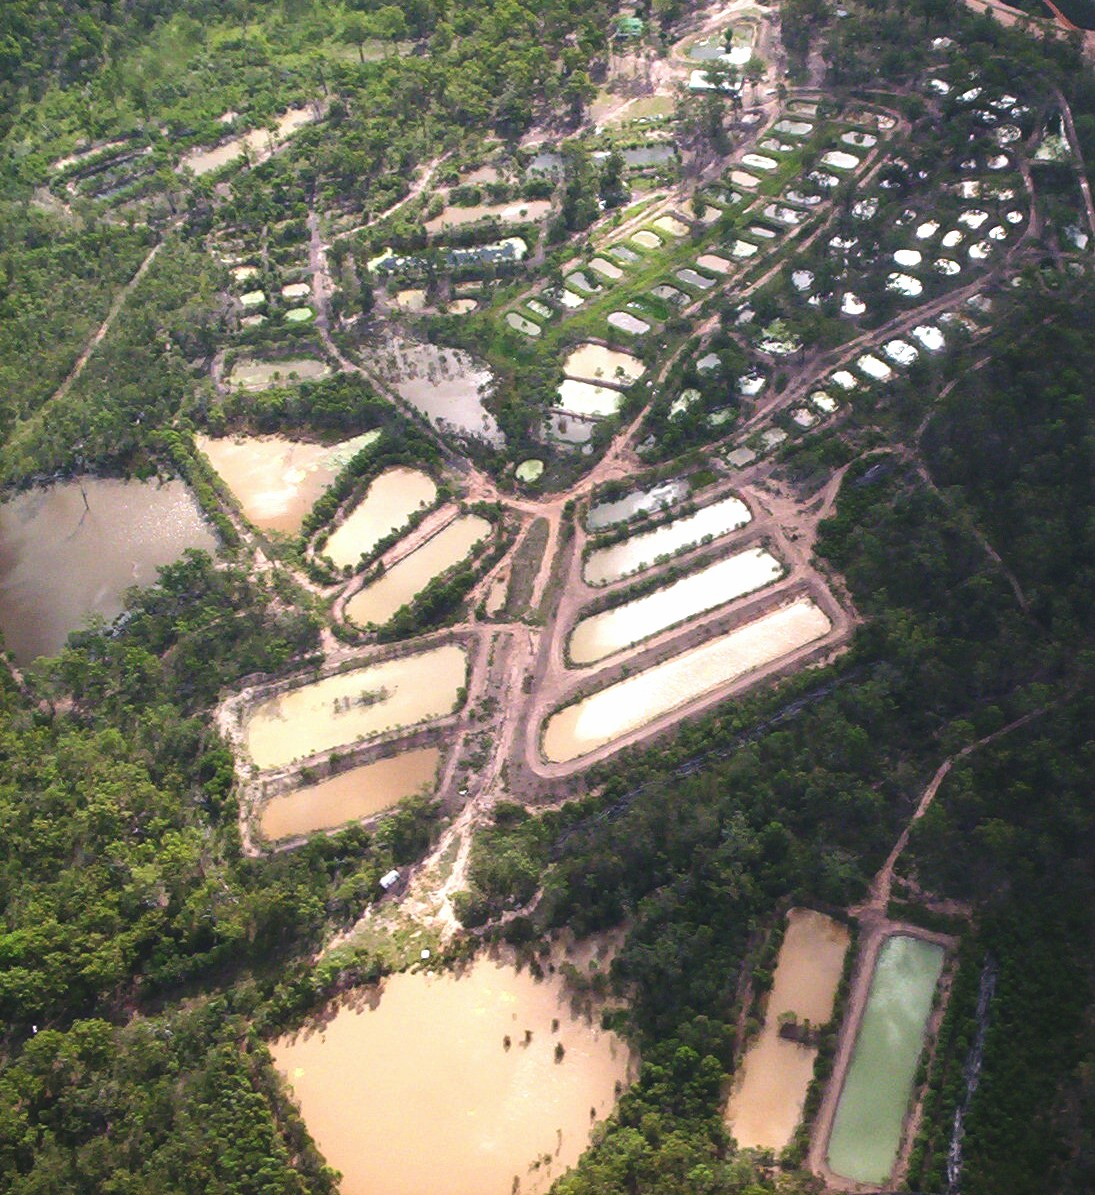 Seen from the air Ausyfish ponds